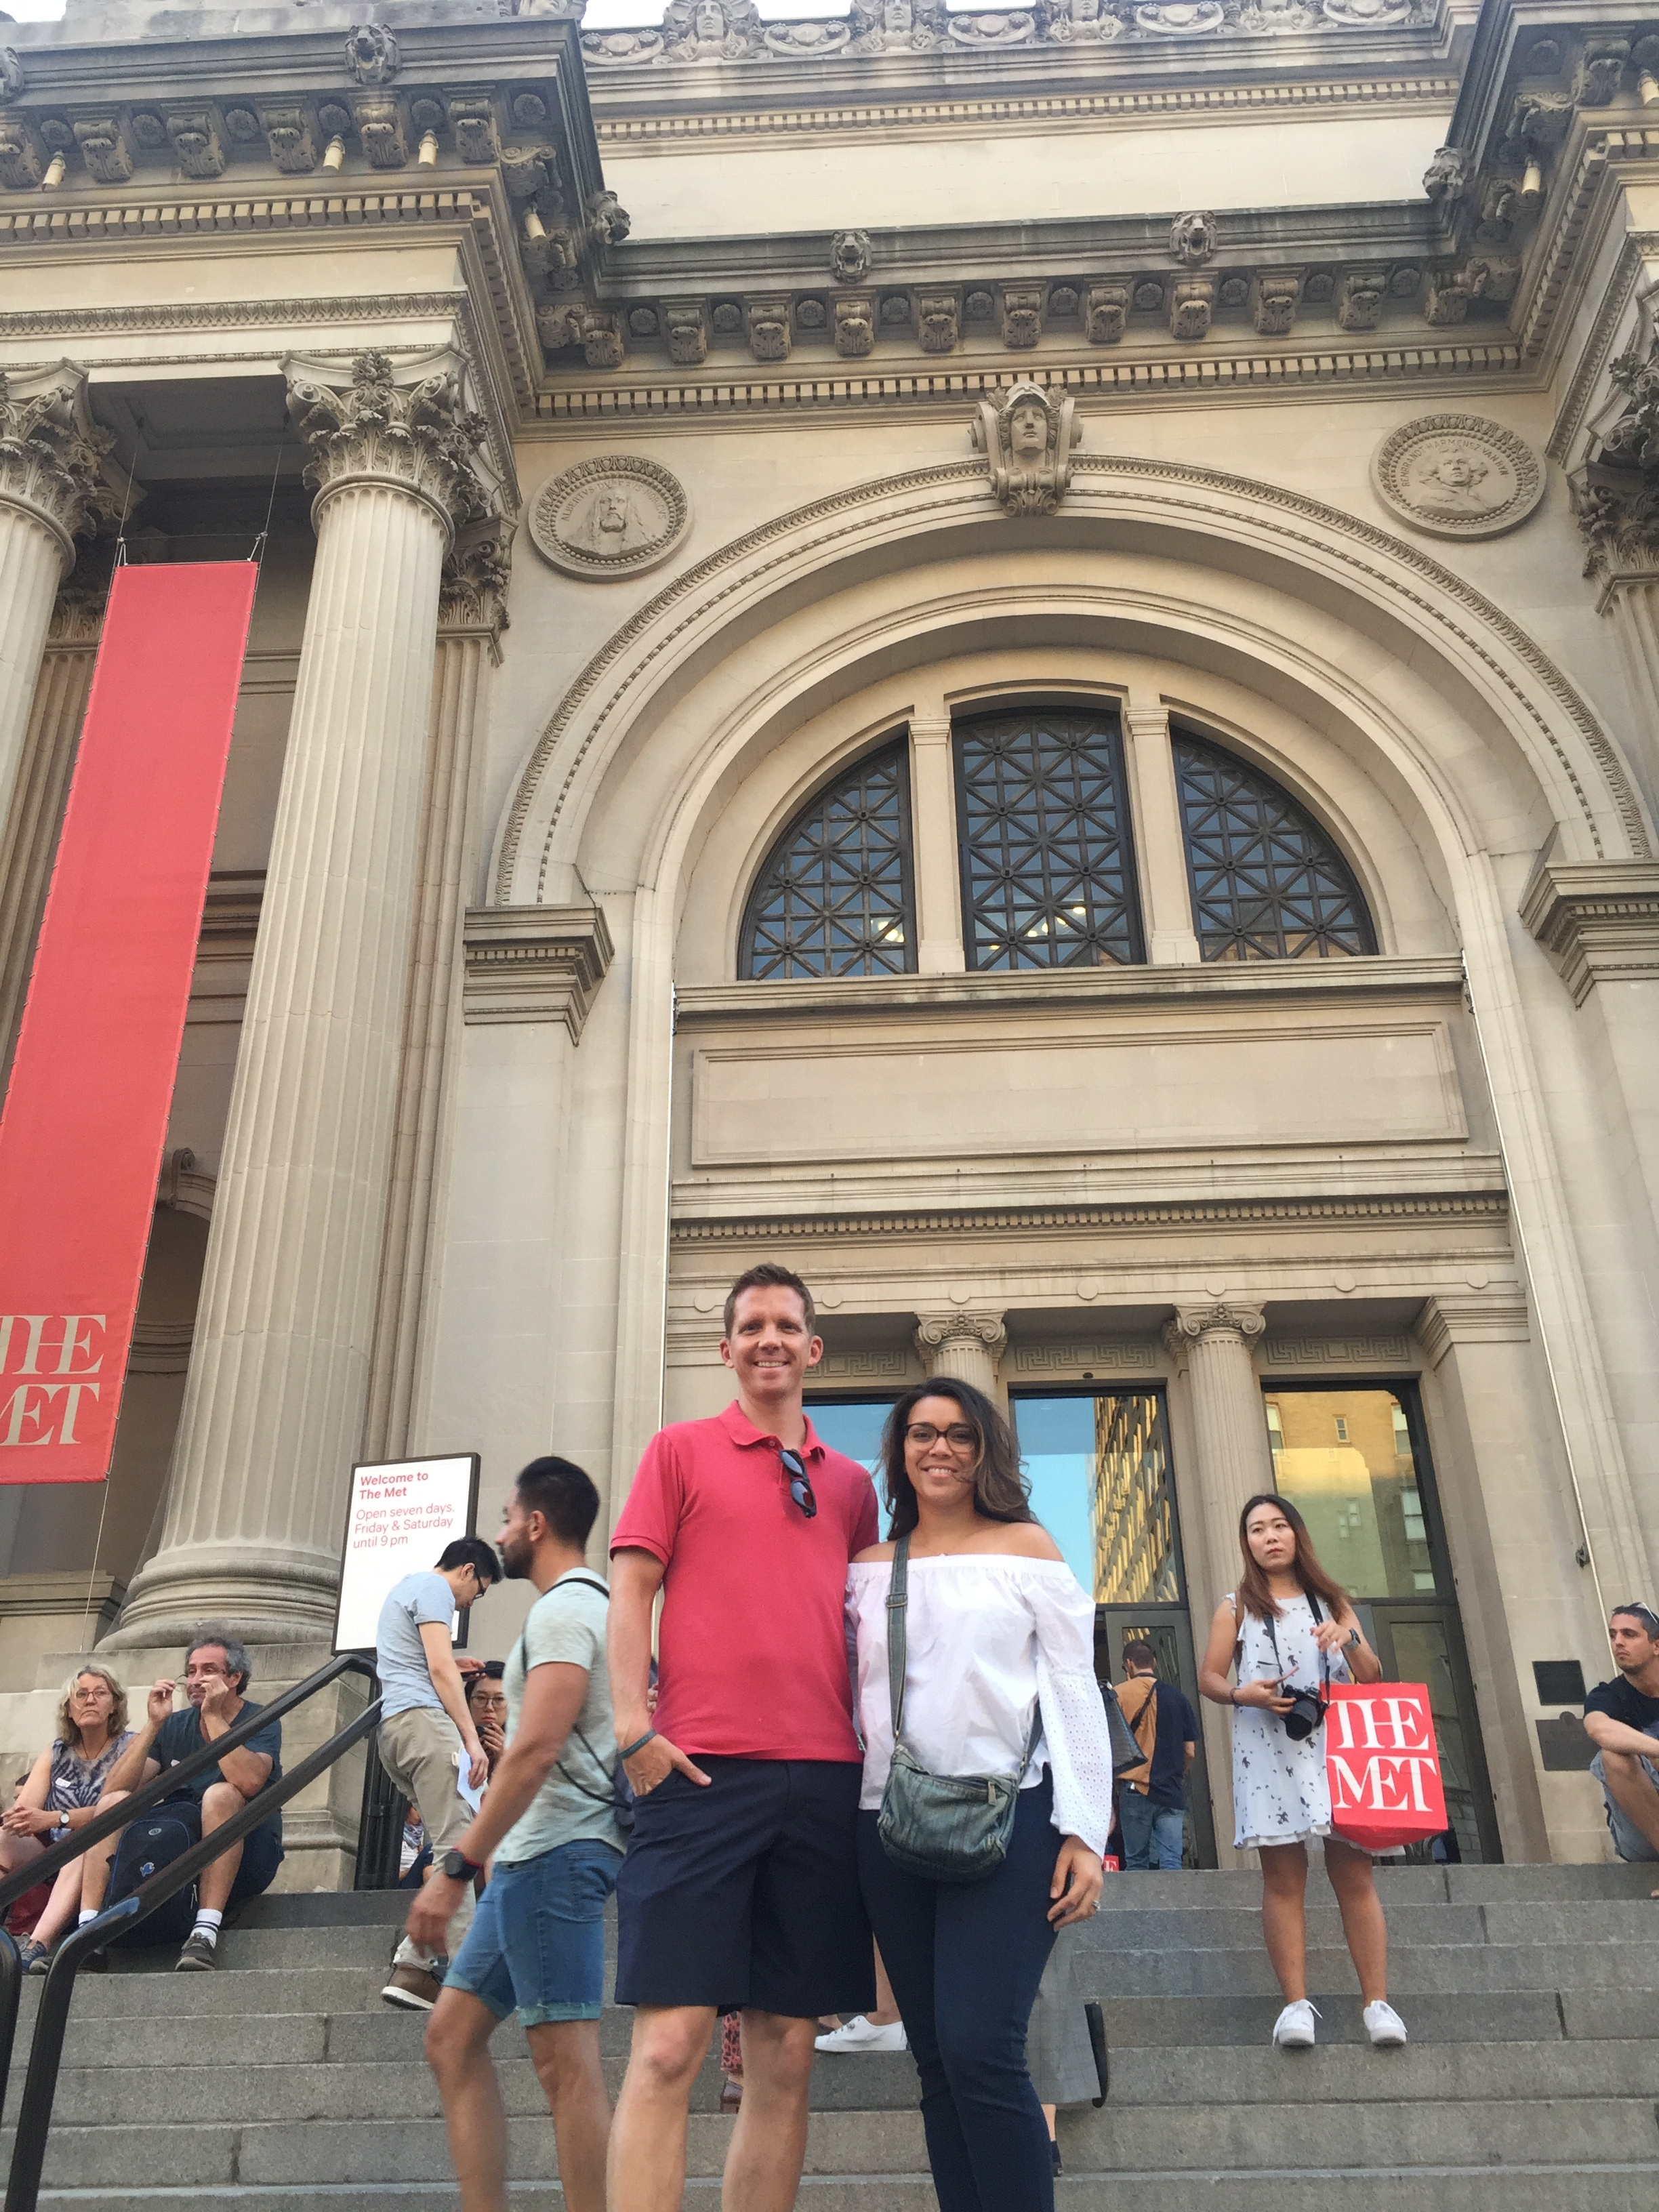 Thanks to our babysitting rotation that is still going strong, Rob and I had a date night where we went to The Met to see The Heavenly Bodies Exhibit.